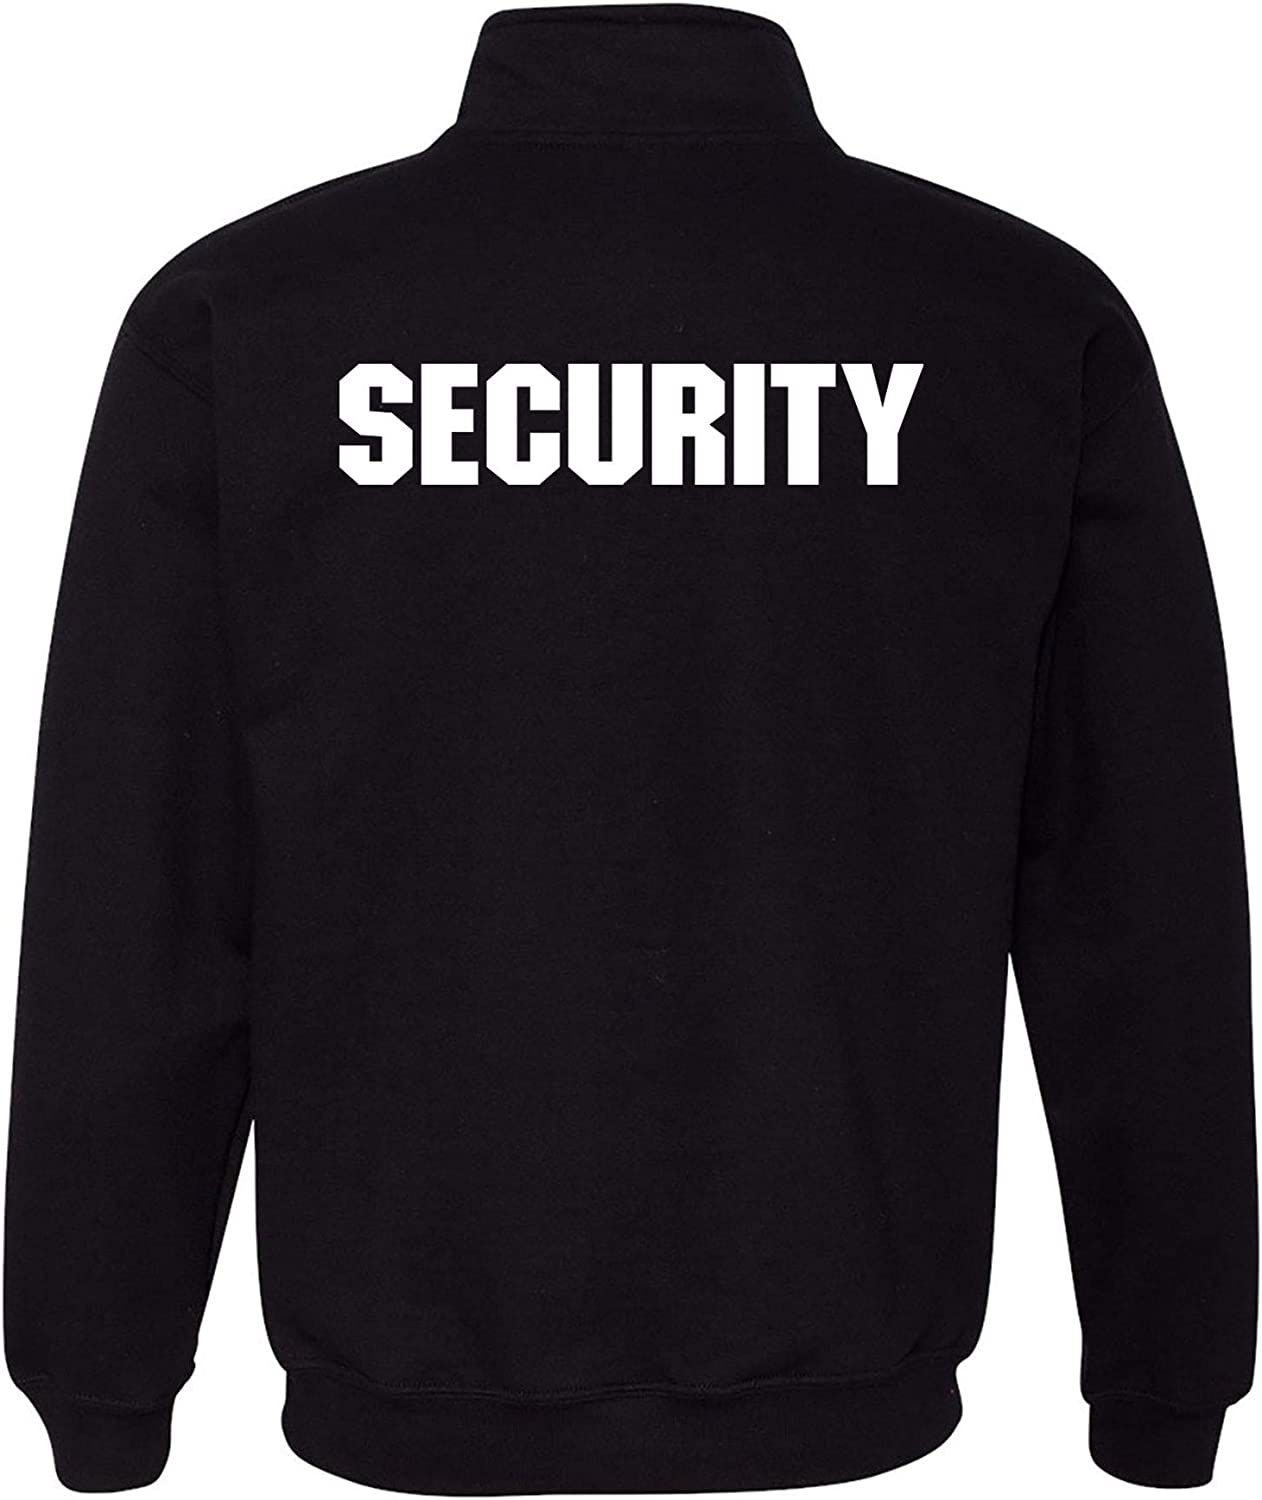 Bouncer Event Safety Staff Officer Guard 1//4 Zip Sweatshirt UGP Campus Apparel Security